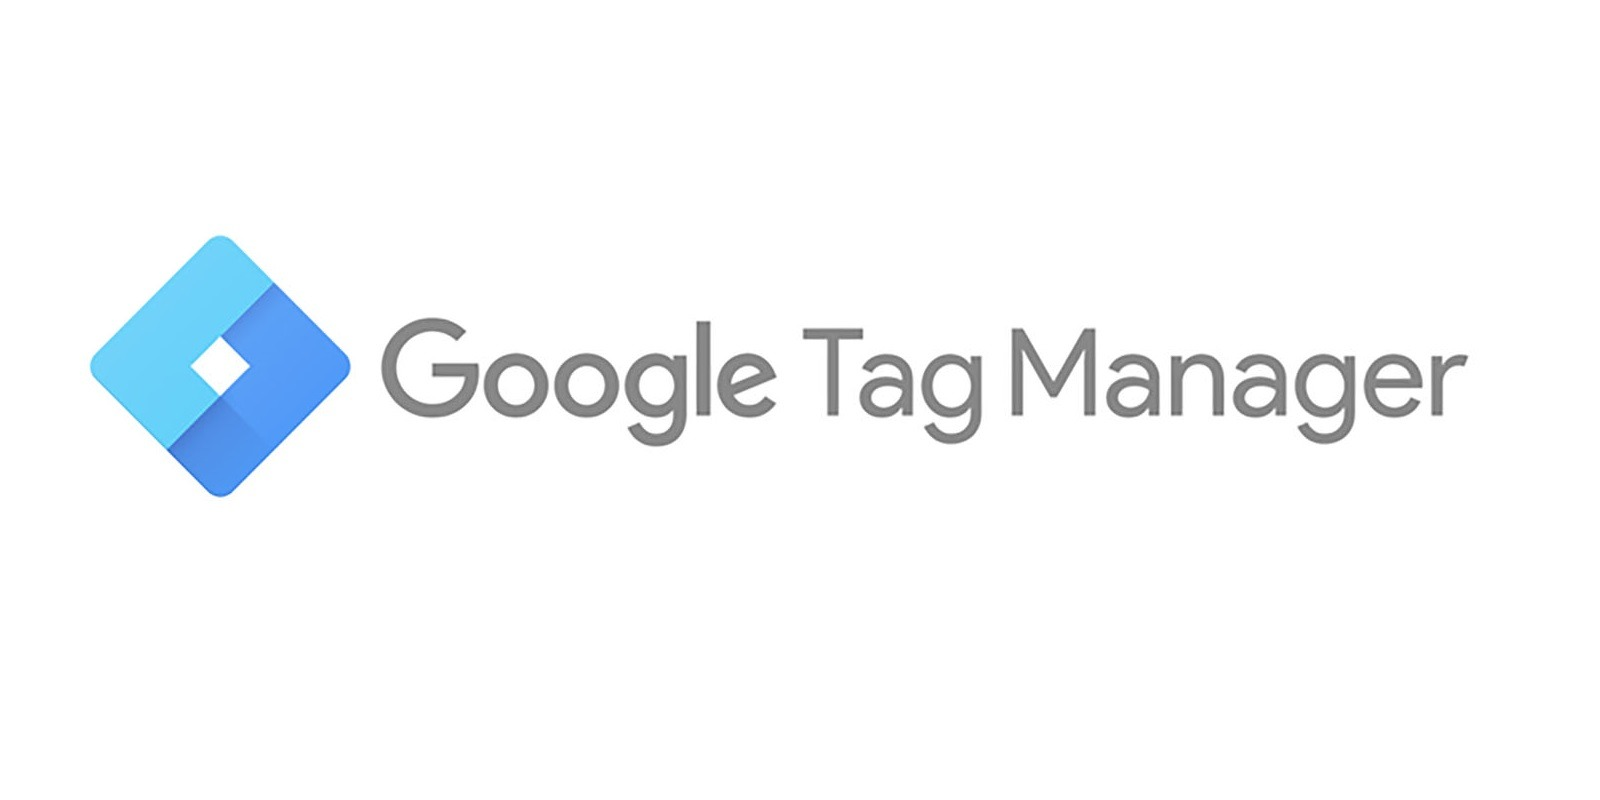 Google Tag Manager Becomes Easier and Safer with Custom Templates ...